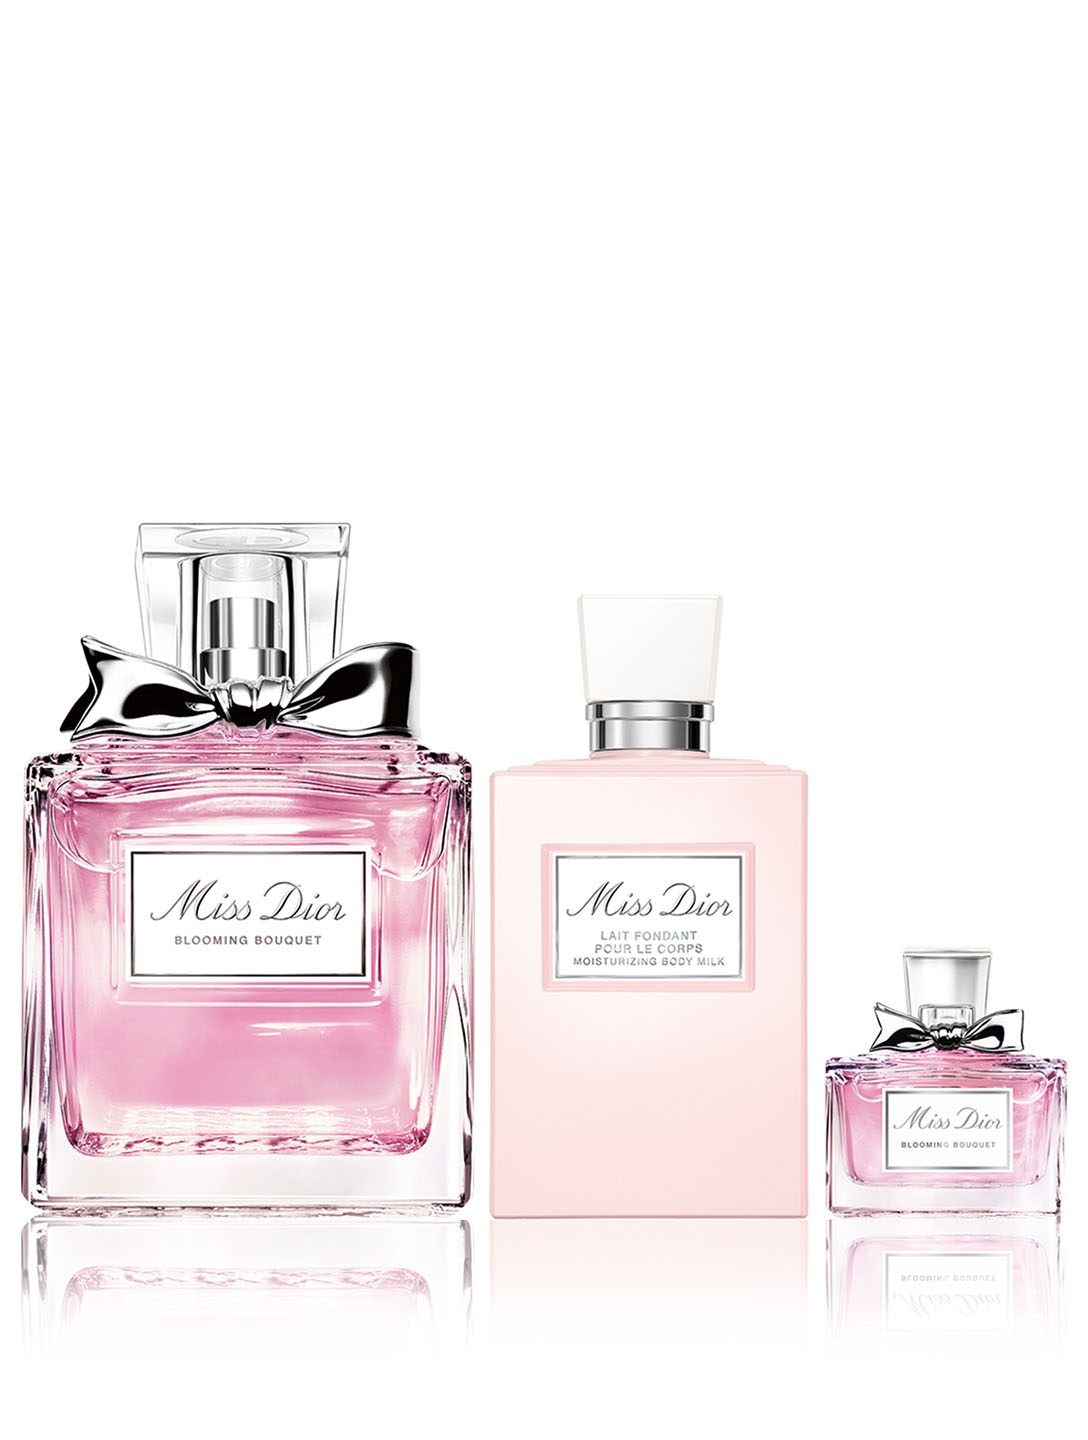 DIOR Miss Dior Blooming Bouquet Fragrance Set Beauty